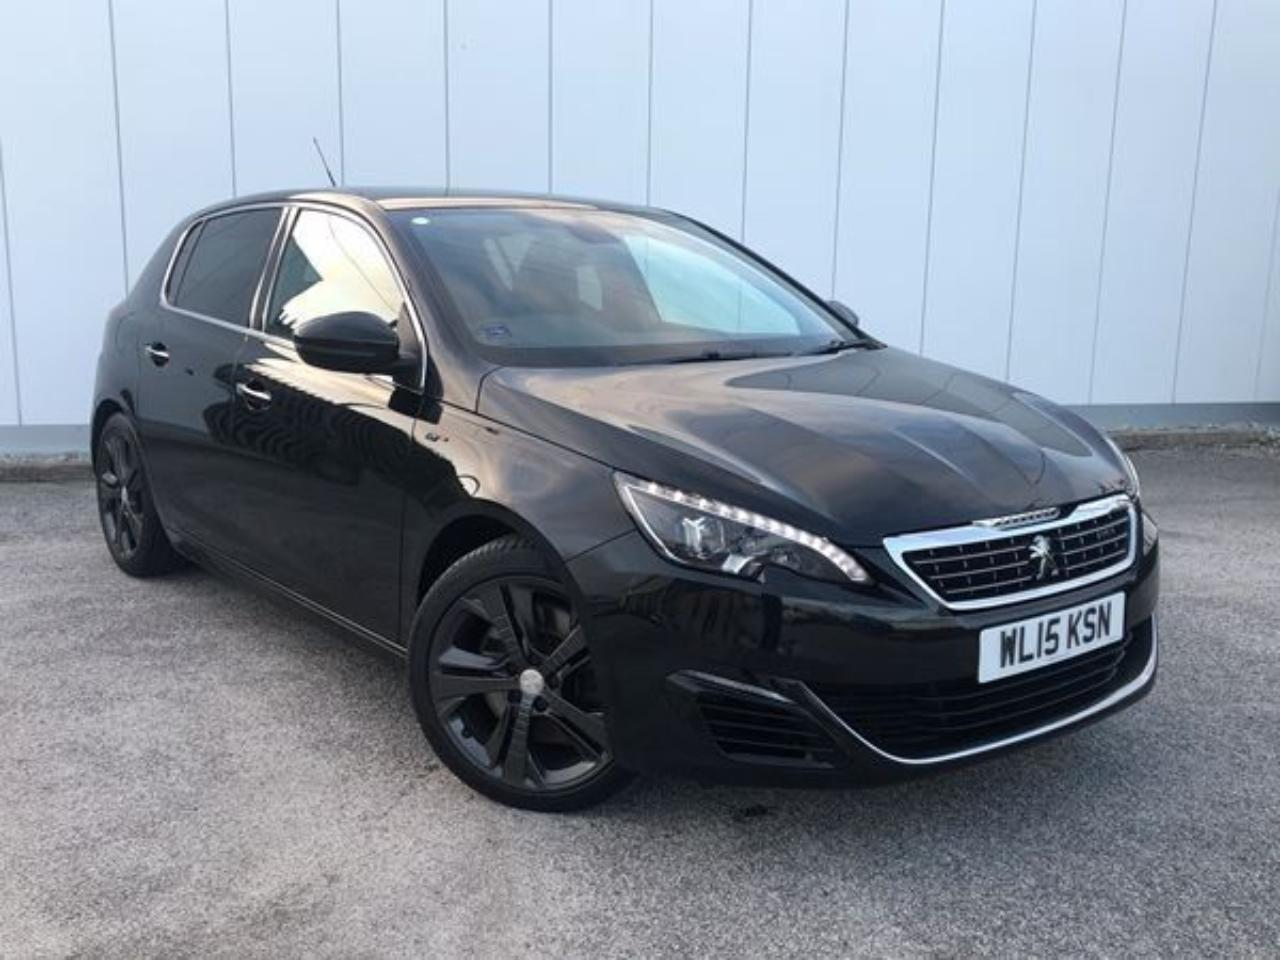 Peugeot 308 2.0 BLUE HDI 180 S/S GT